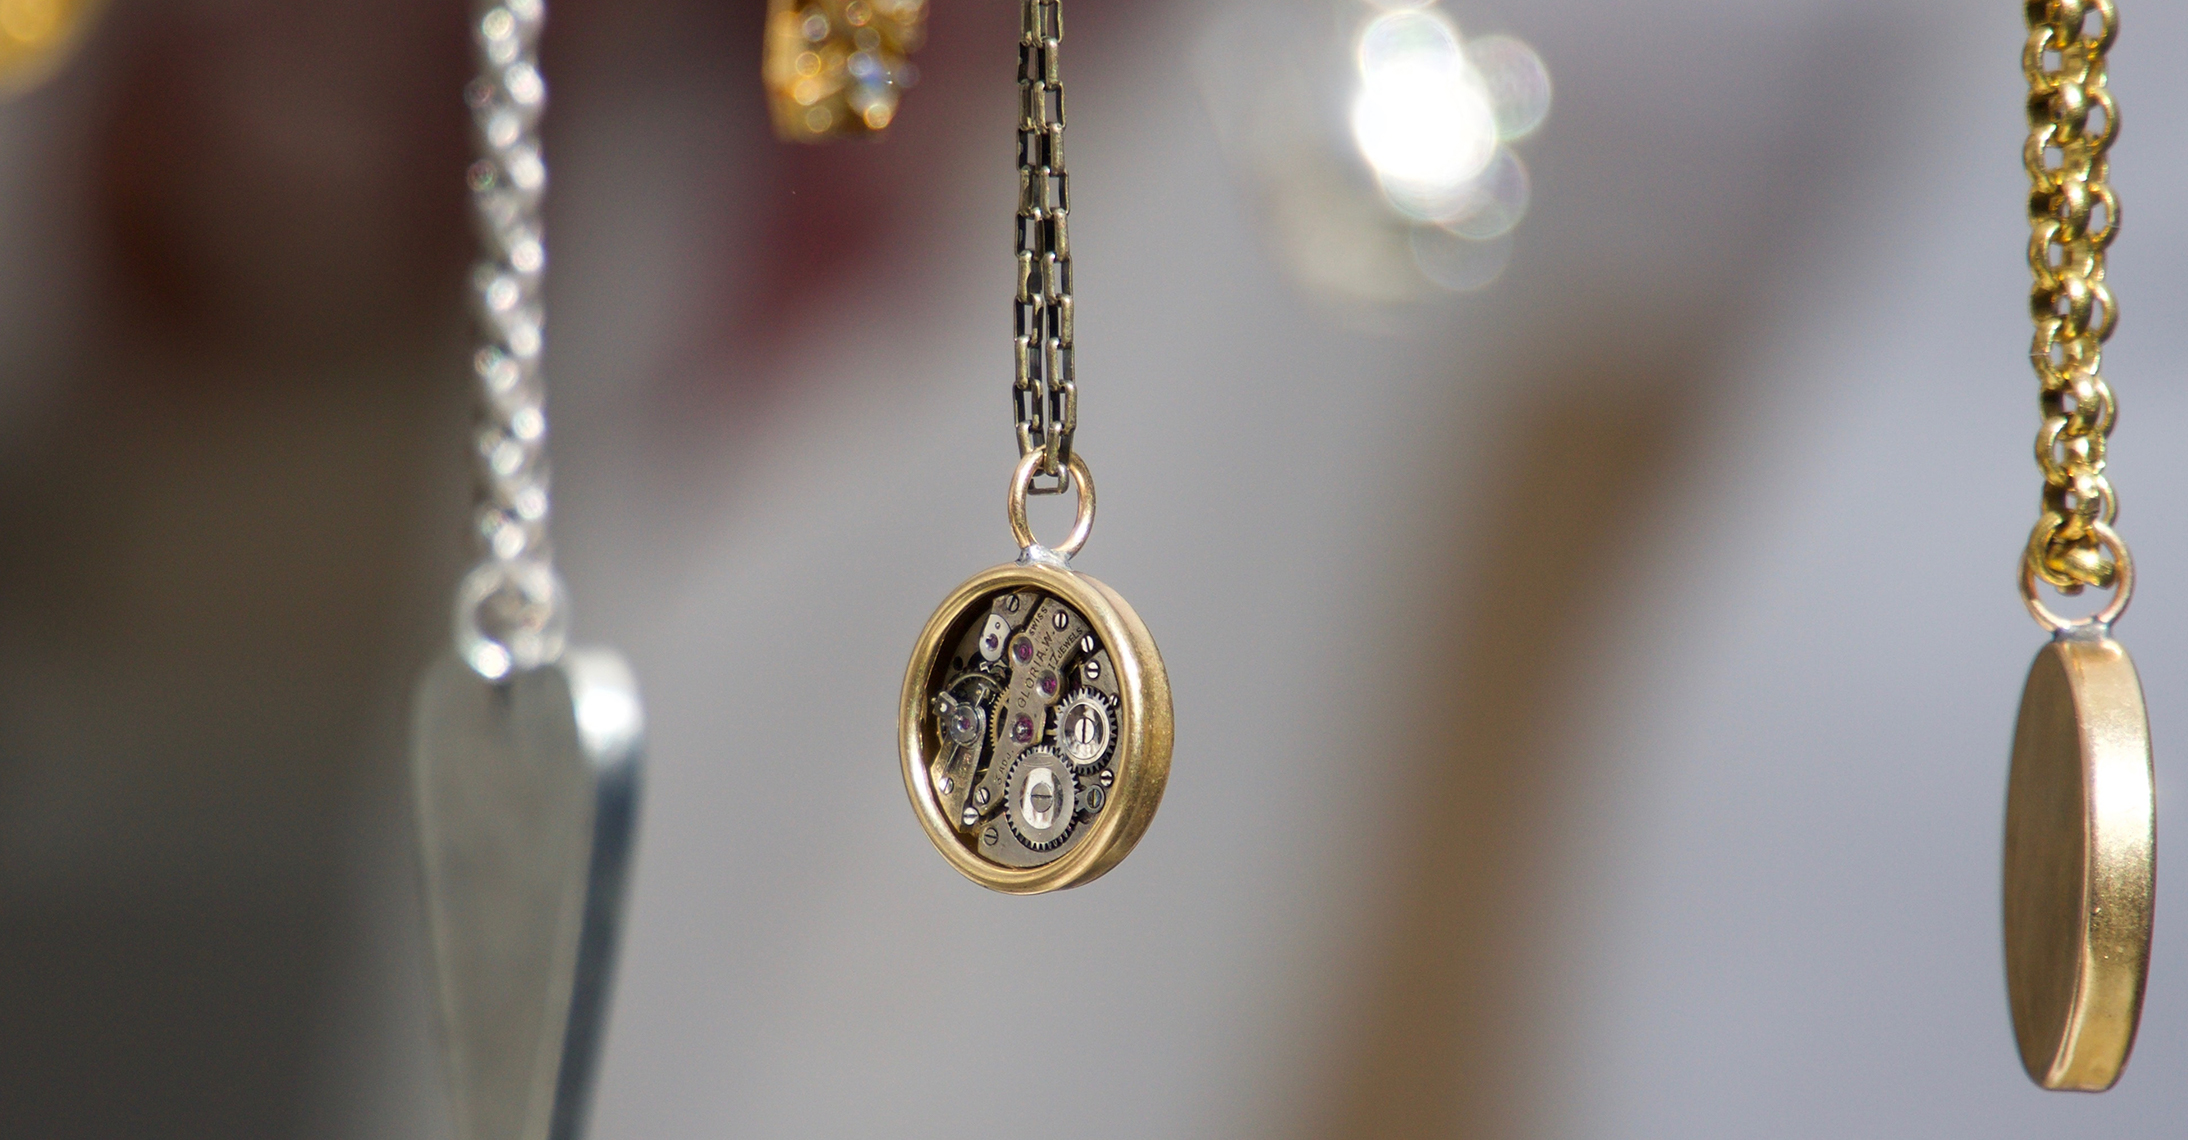 Small Jewelry Business Becomes Highly Successful